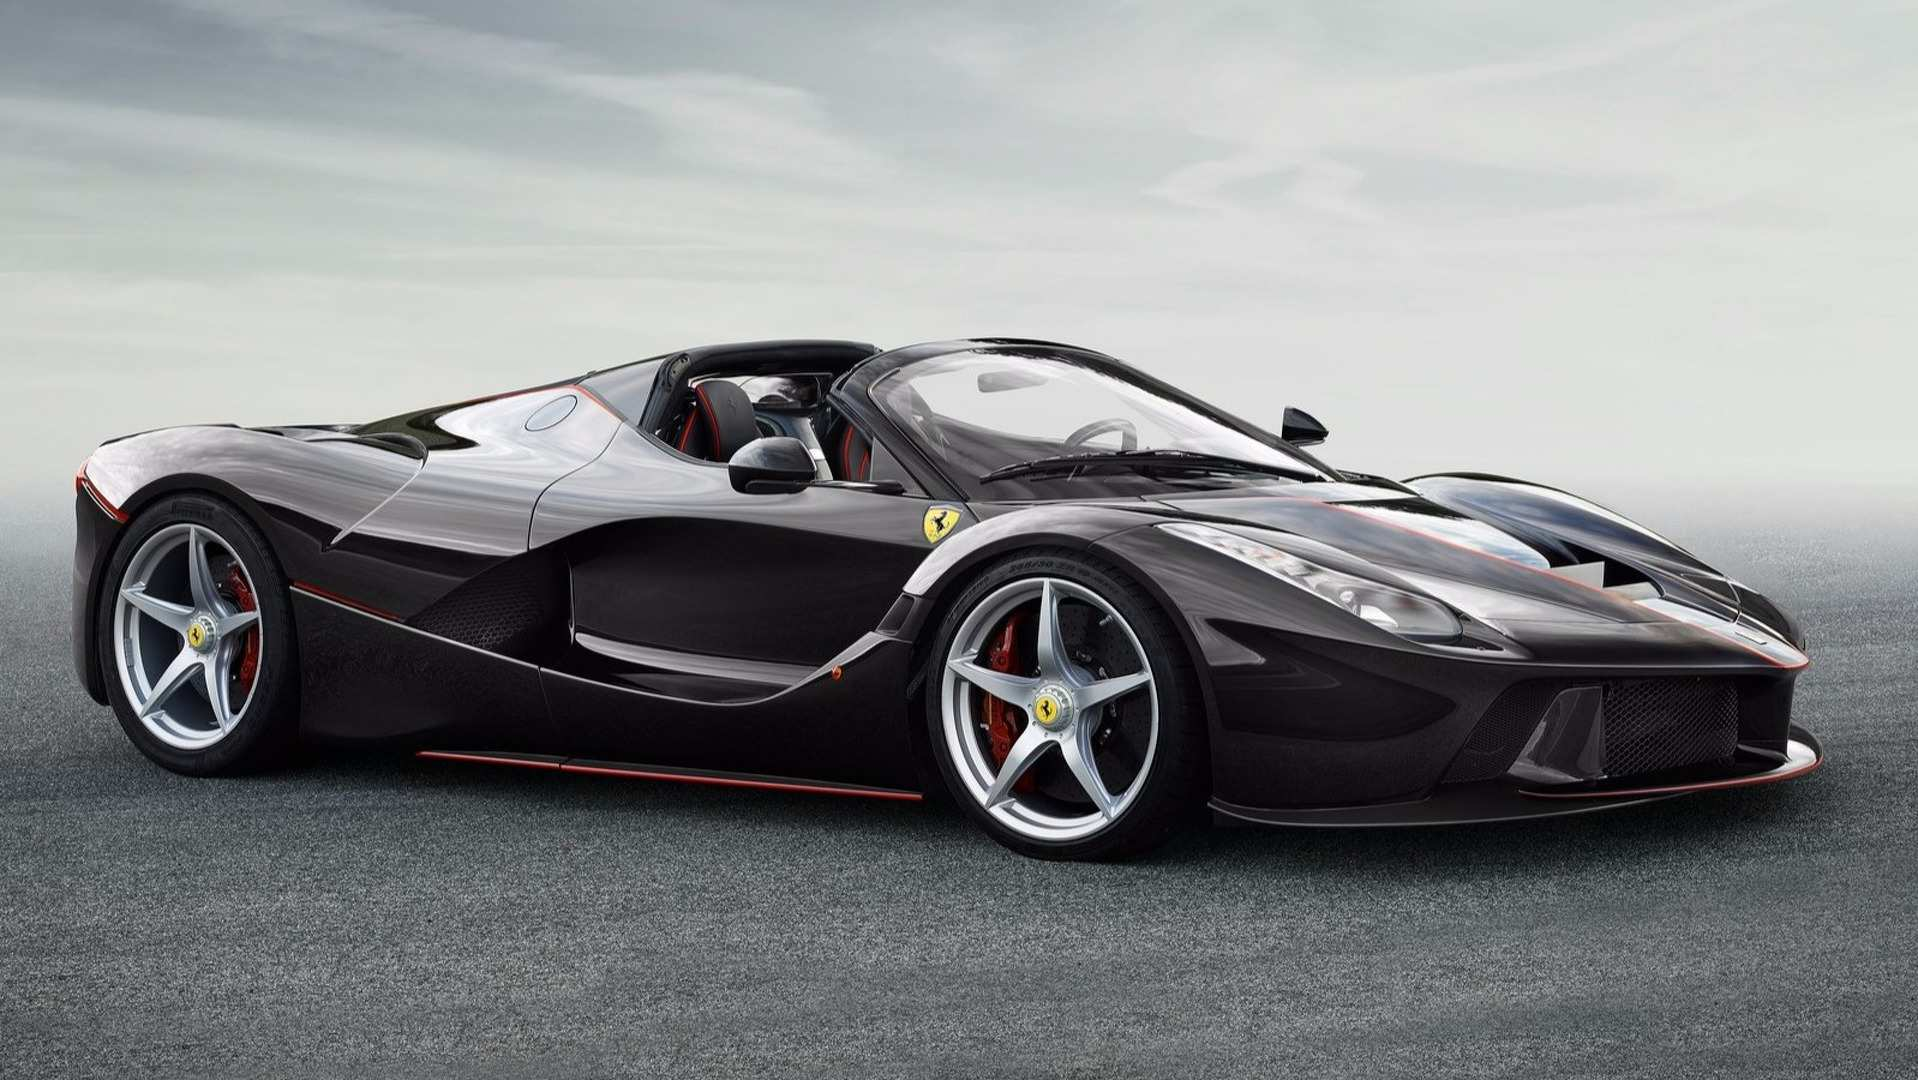 64 The Best New Ferrari 2020 Review And Release Date